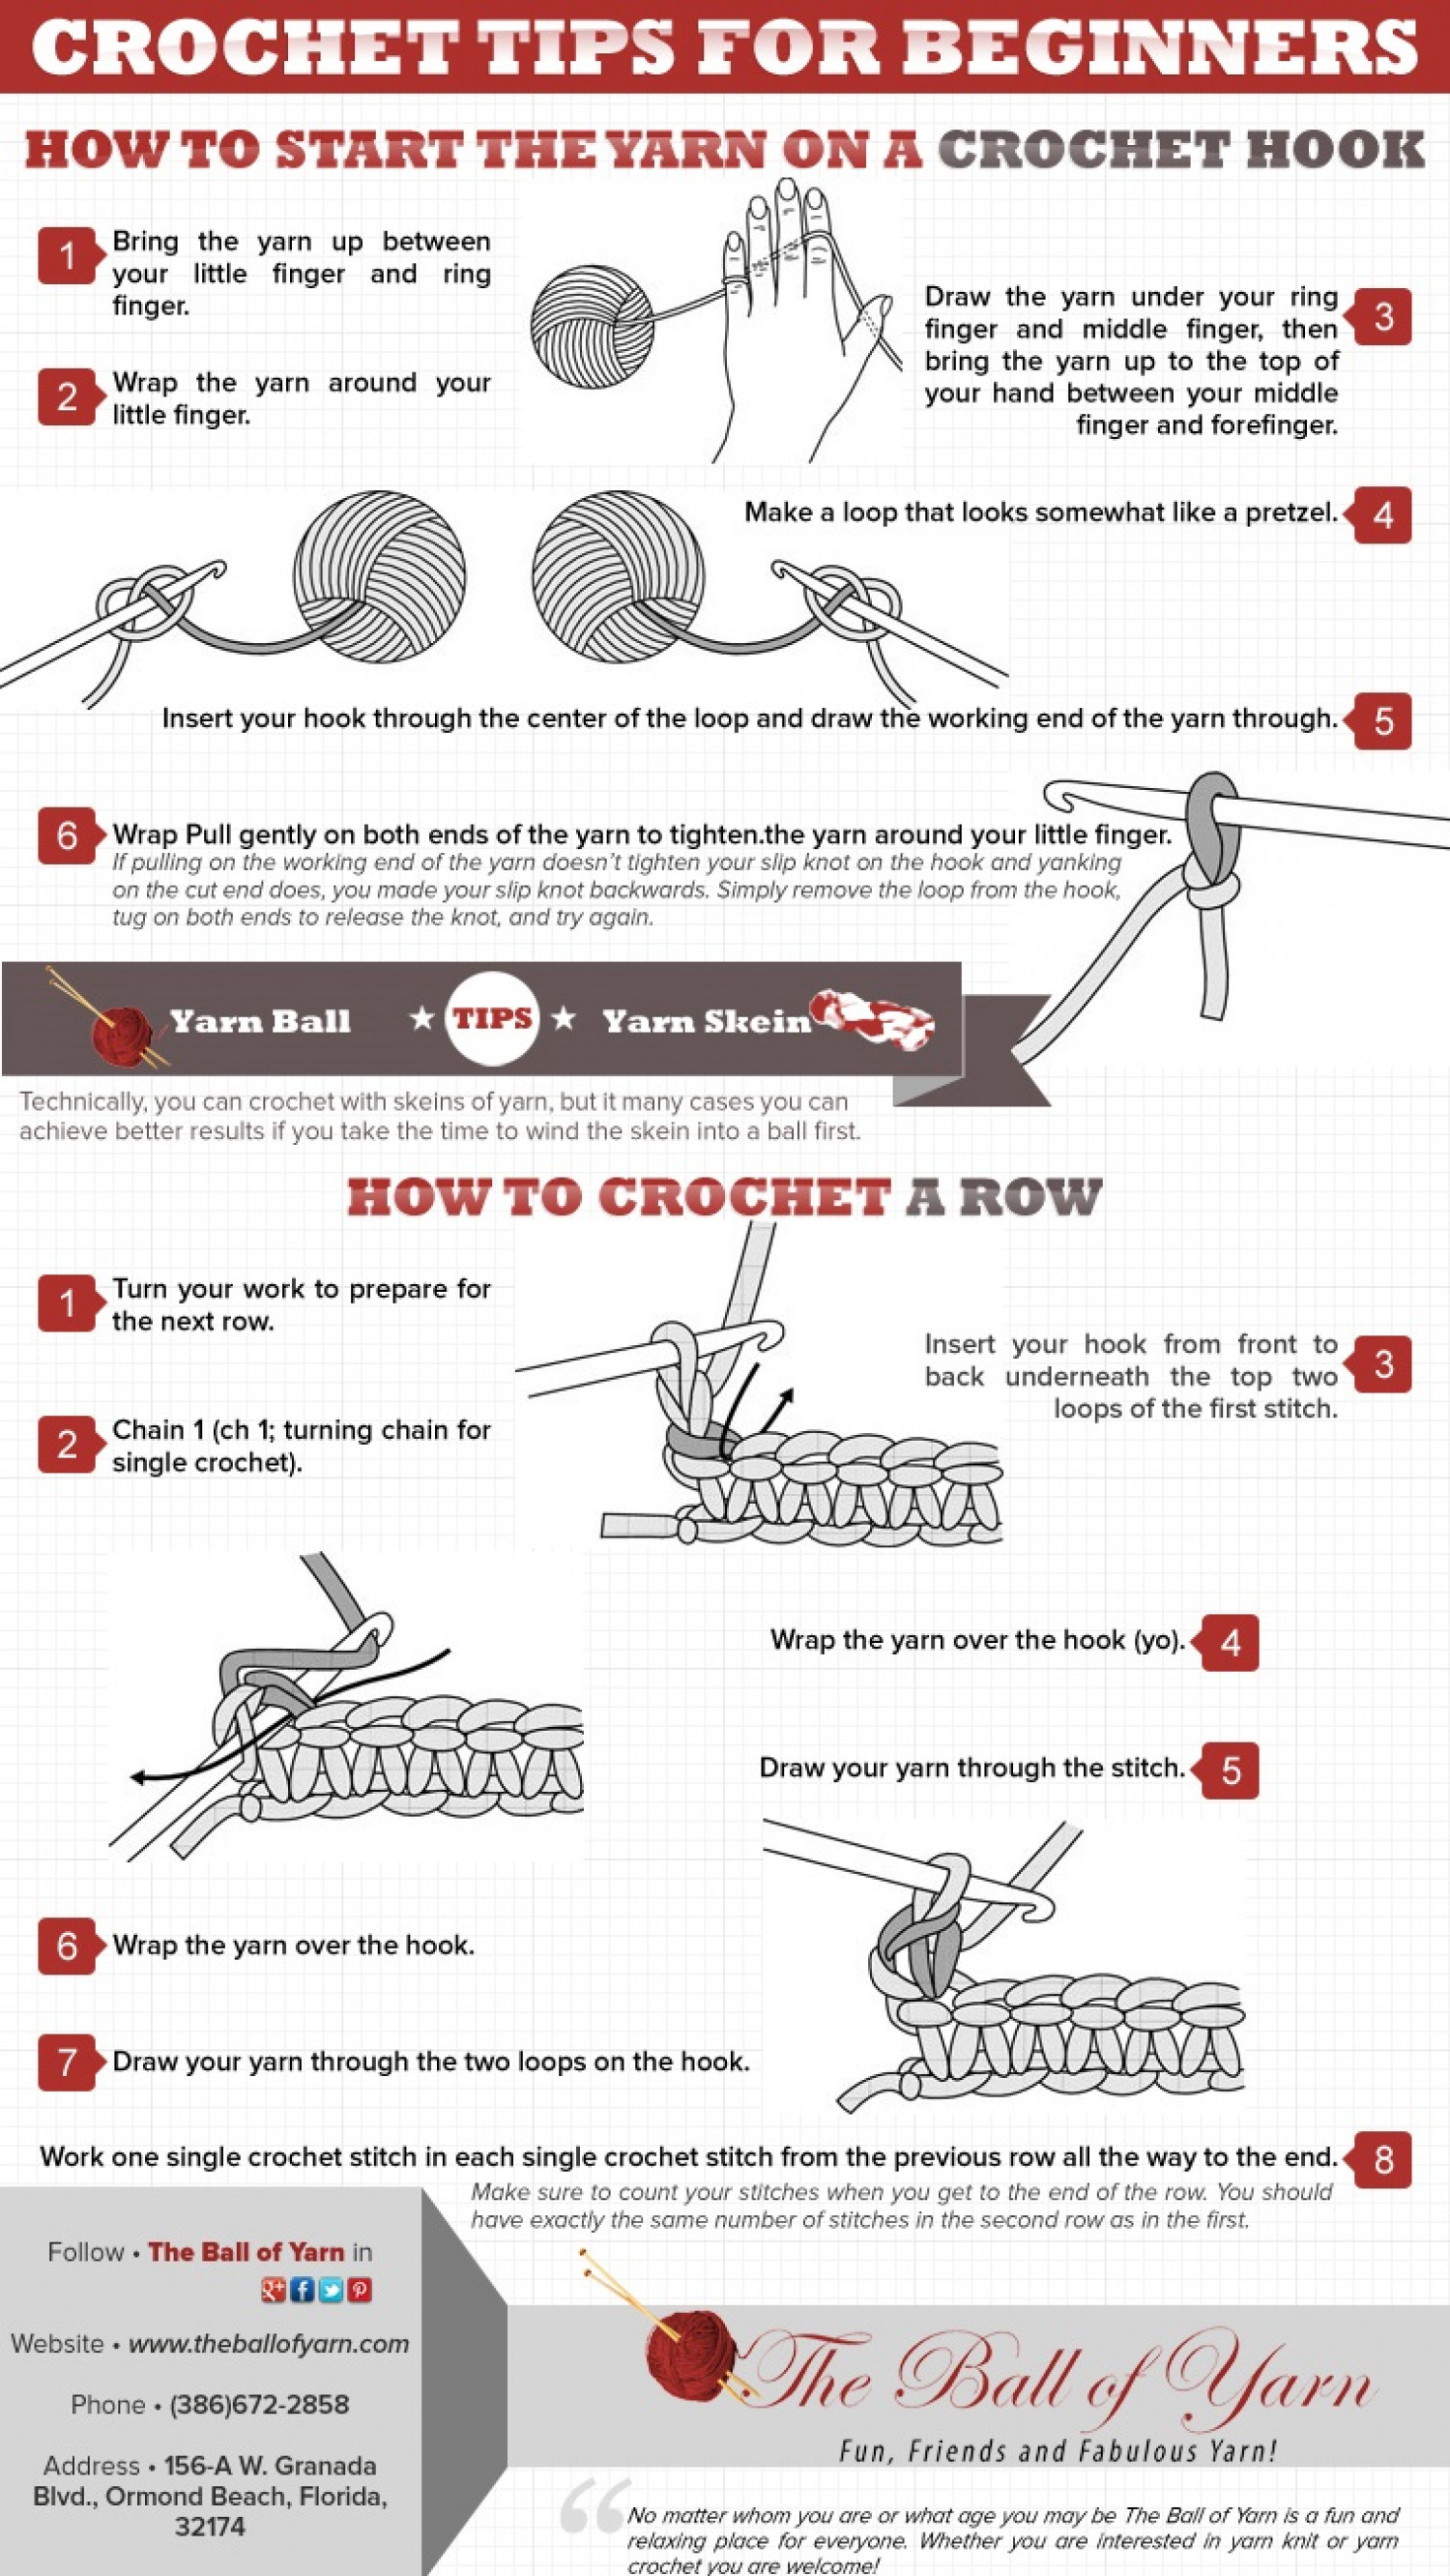 Crochet Tips : Crochet Tips for Beginners Infographic